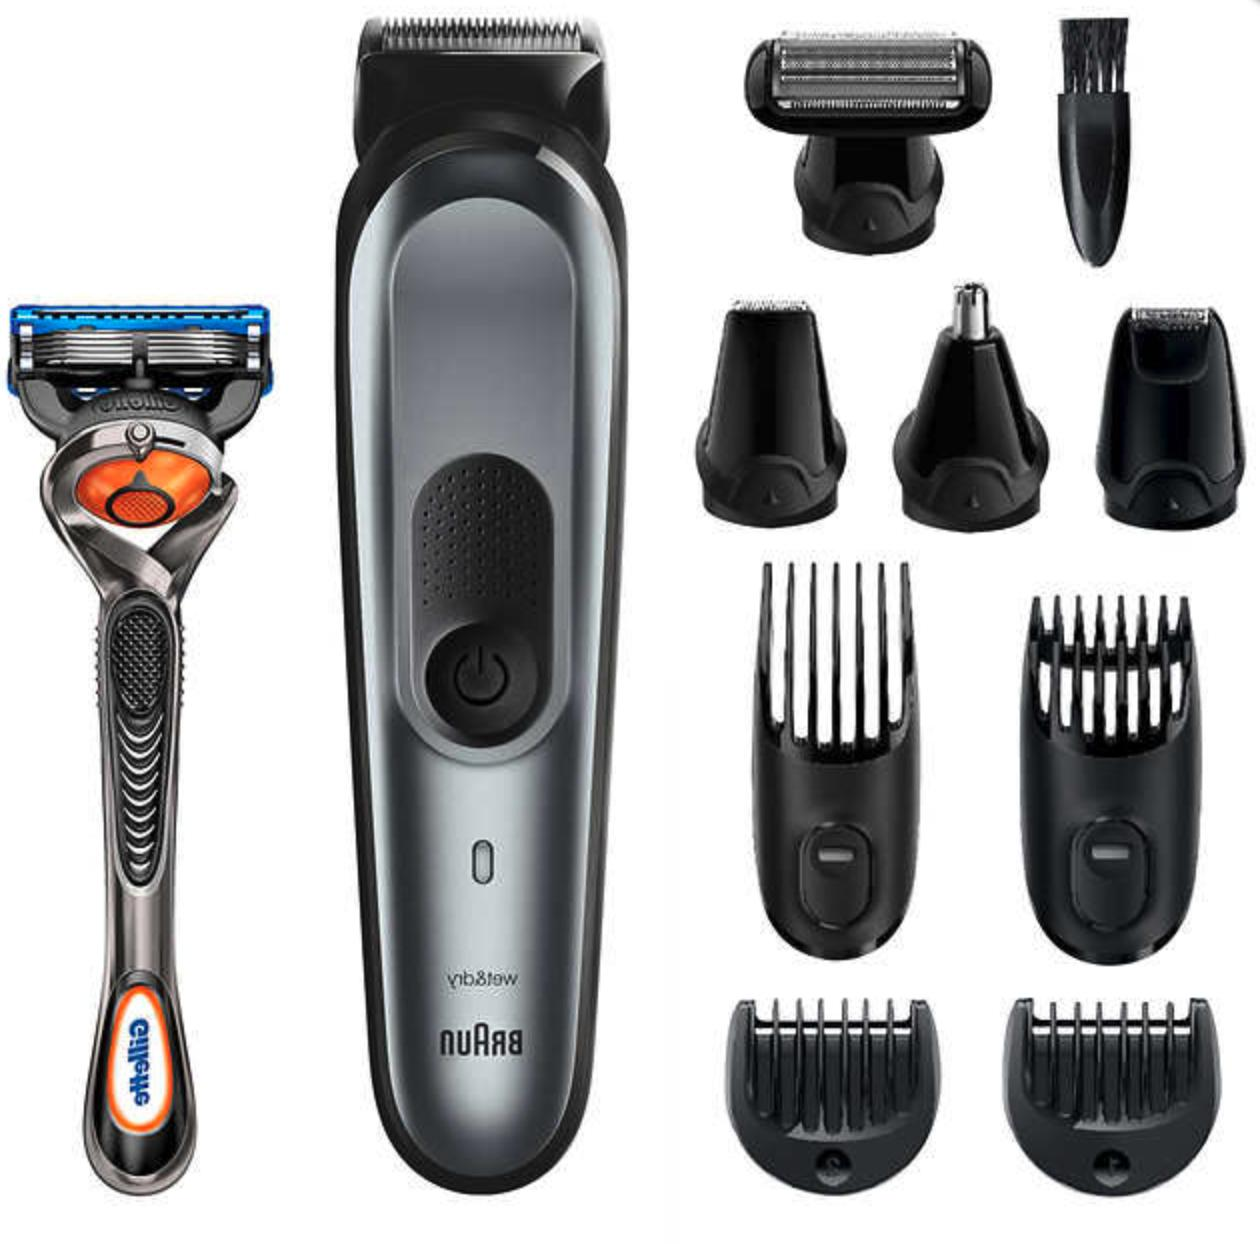 new mgk7221 10 in 1 hair trimmer